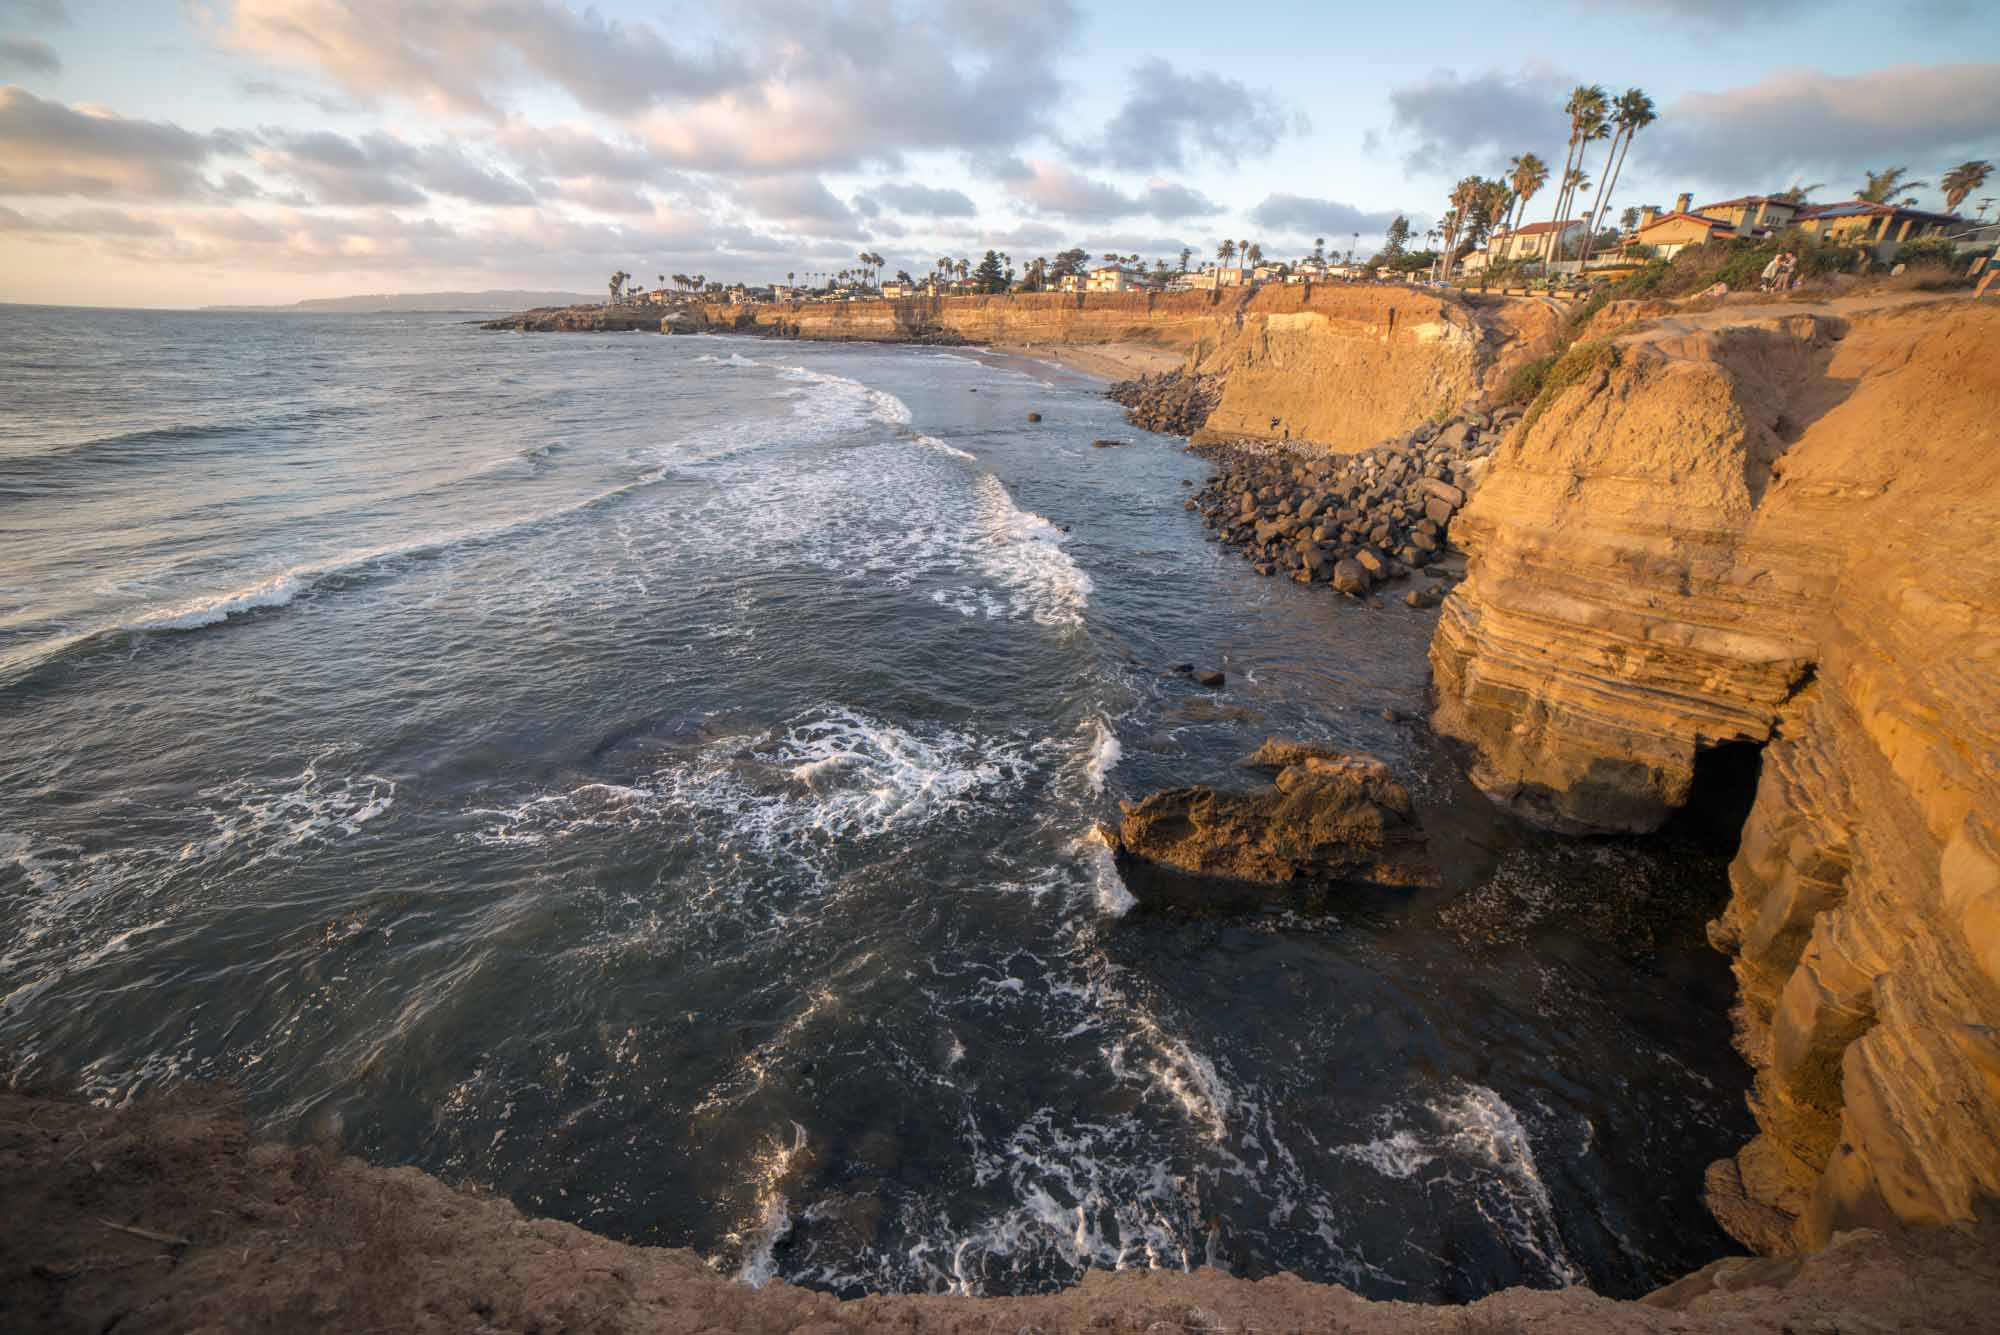 Kierunek Sunset Cliffs, ca - podróże po USA